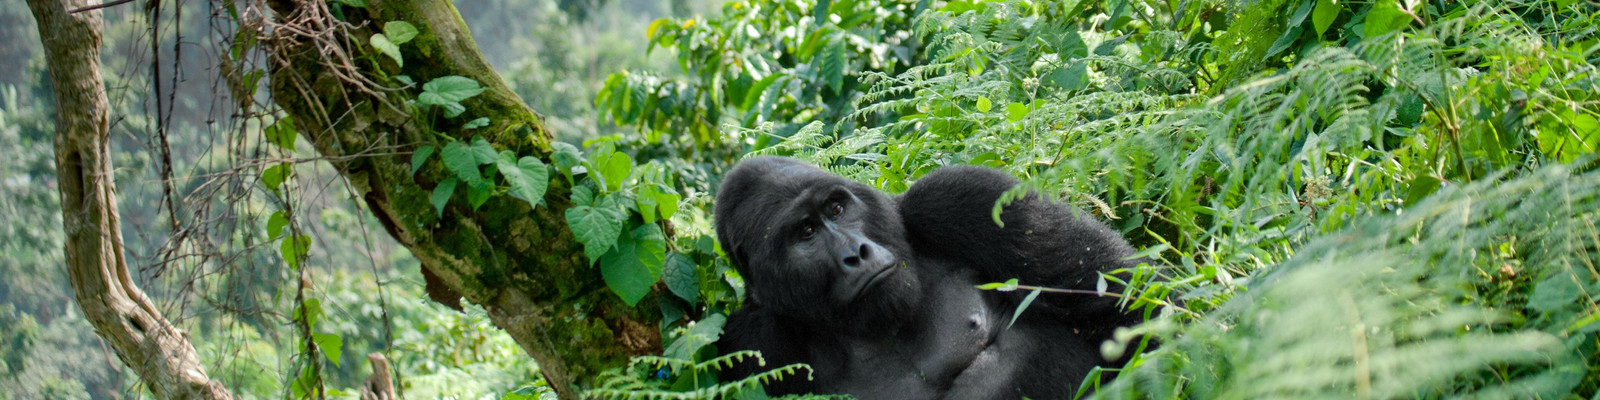 Uganda Rundreise durch einen Nationalpark